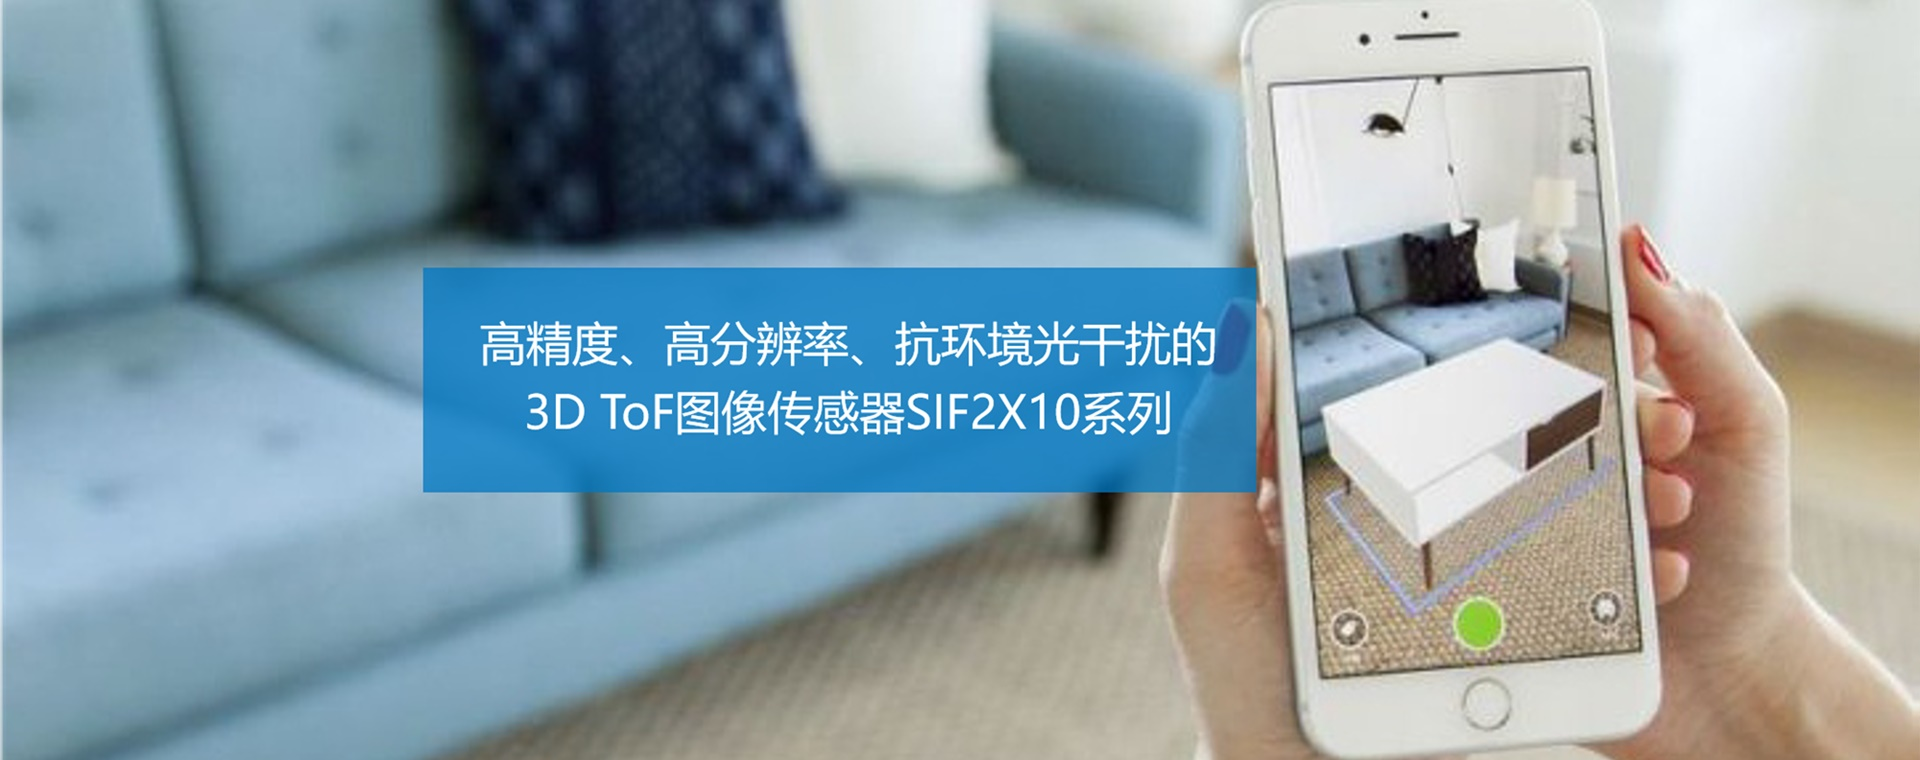 2-tof-chinese